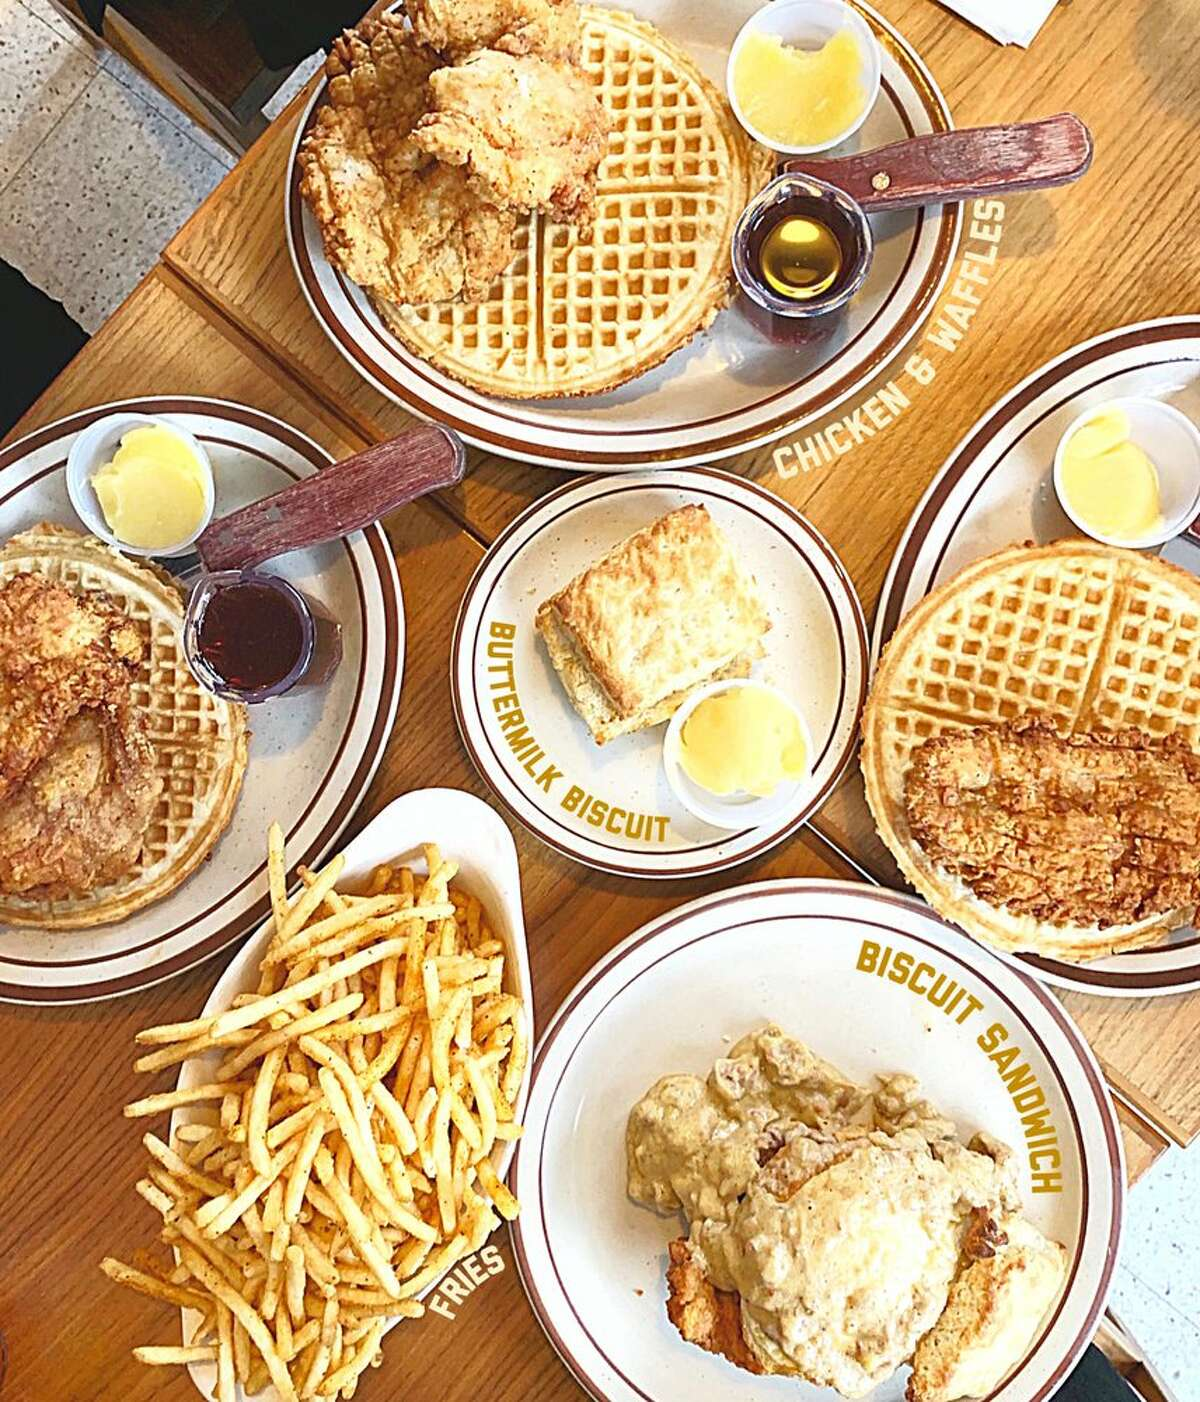 Fat's Chicken and Wafflesdoles out exactly what the name suggests. Keep clicking for all the other bustling bistros for brunch in Seattle.